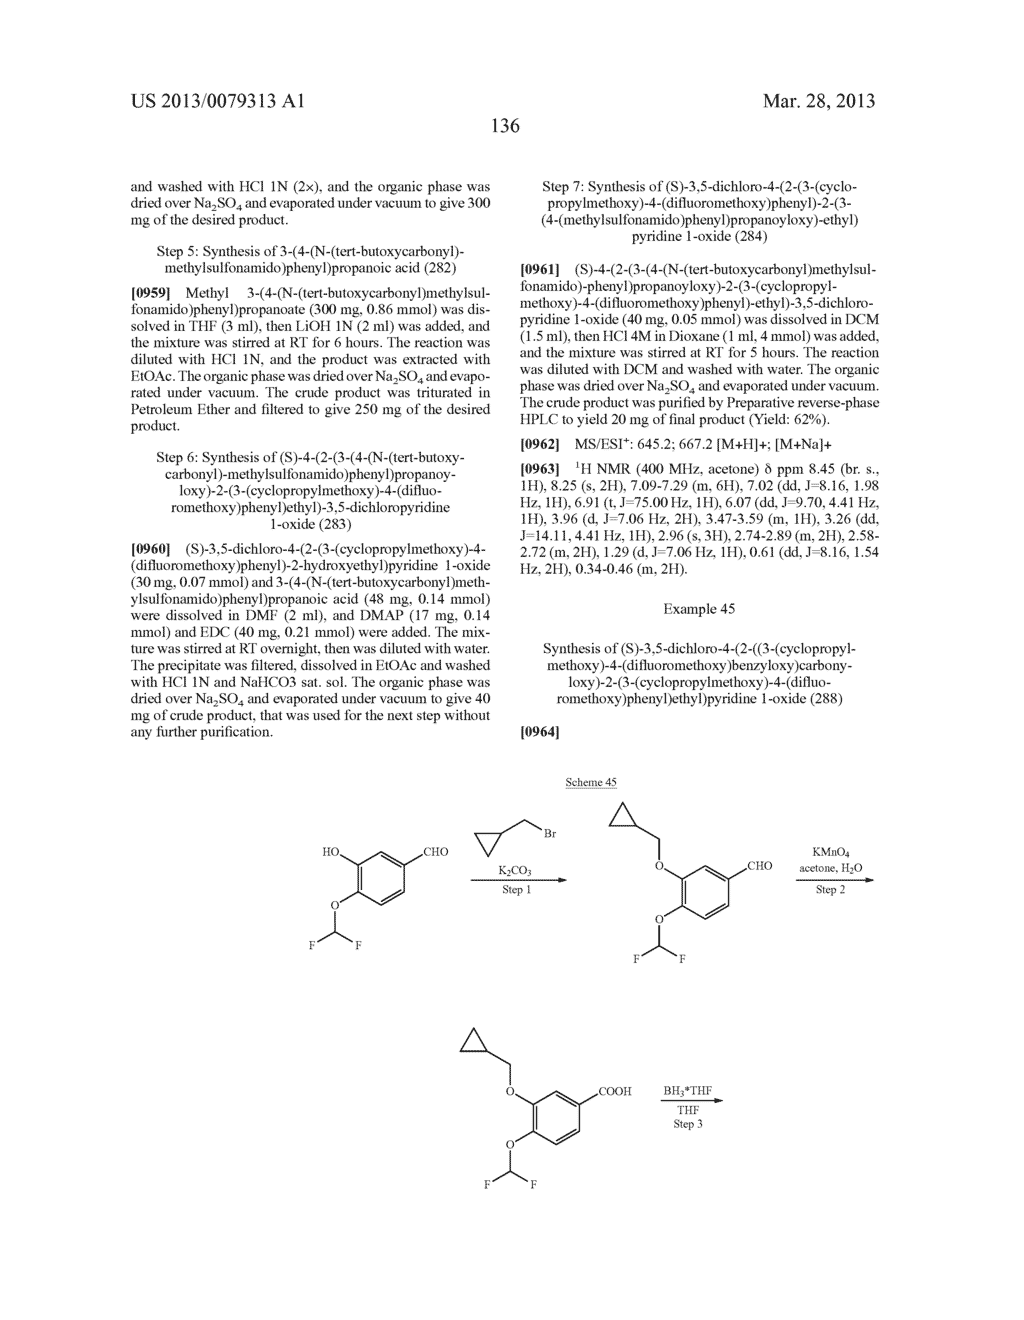 DERIVATIVES OF 1-PHENYL-2-PYRIDINYL ALKYL ALCOHOLS AS PHOSPHODIESTERASE     INHIBITORS - diagram, schematic, and image 137